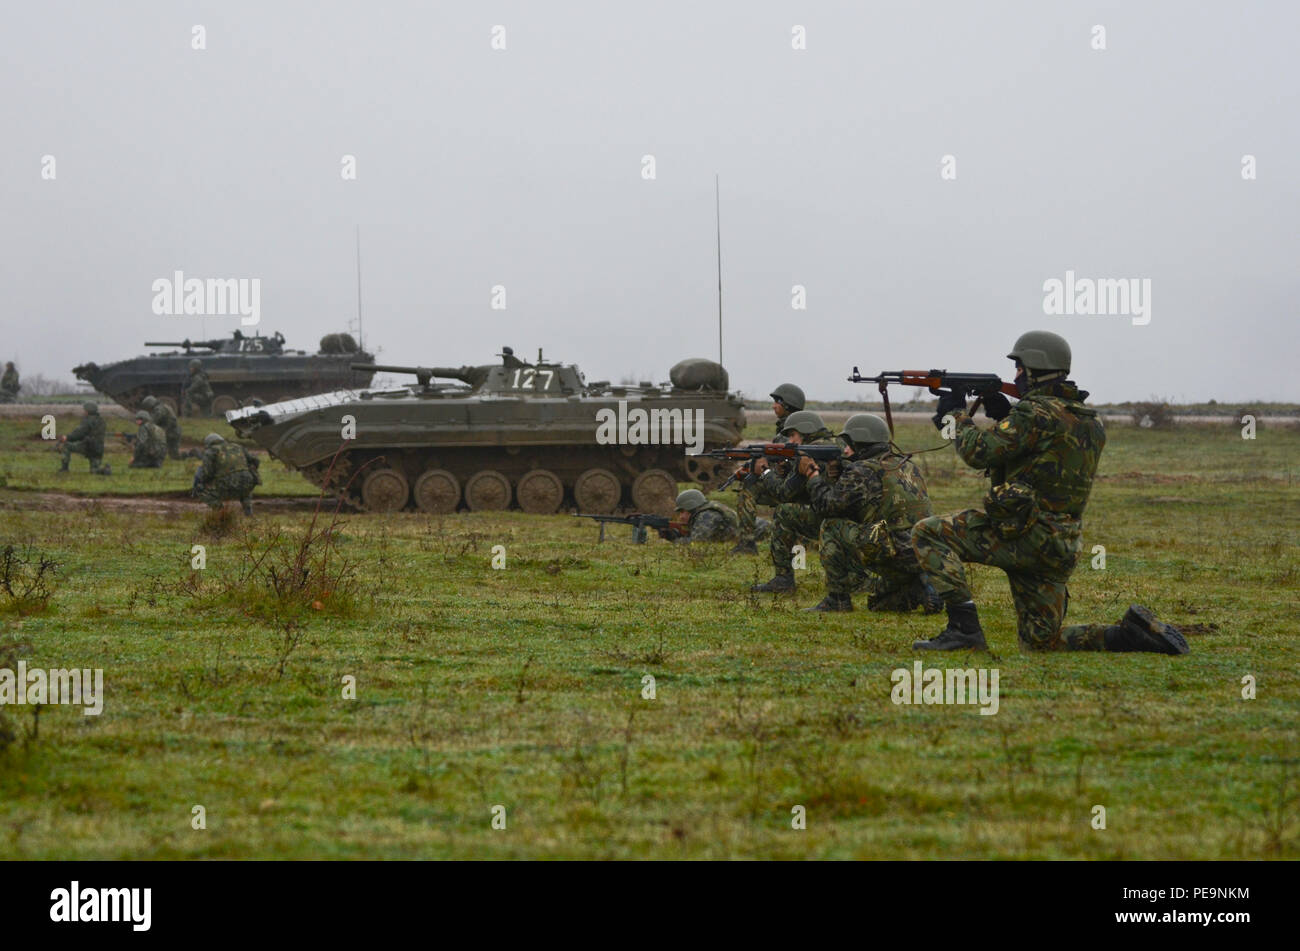 Bulgarian soldiers of 1-61st Mechanized Battalion get on line along the side of Boyevaya Mashina Pekhoty 1's (BMP -1) to suppress the enemy during Exercise Peace Sentinel at Novo Selo Training Center, Bulgaria, Nov. 24, 2015. (U.S. Army photo by Staff Sgt. Steven M. Colvin/Released) - Stock Image